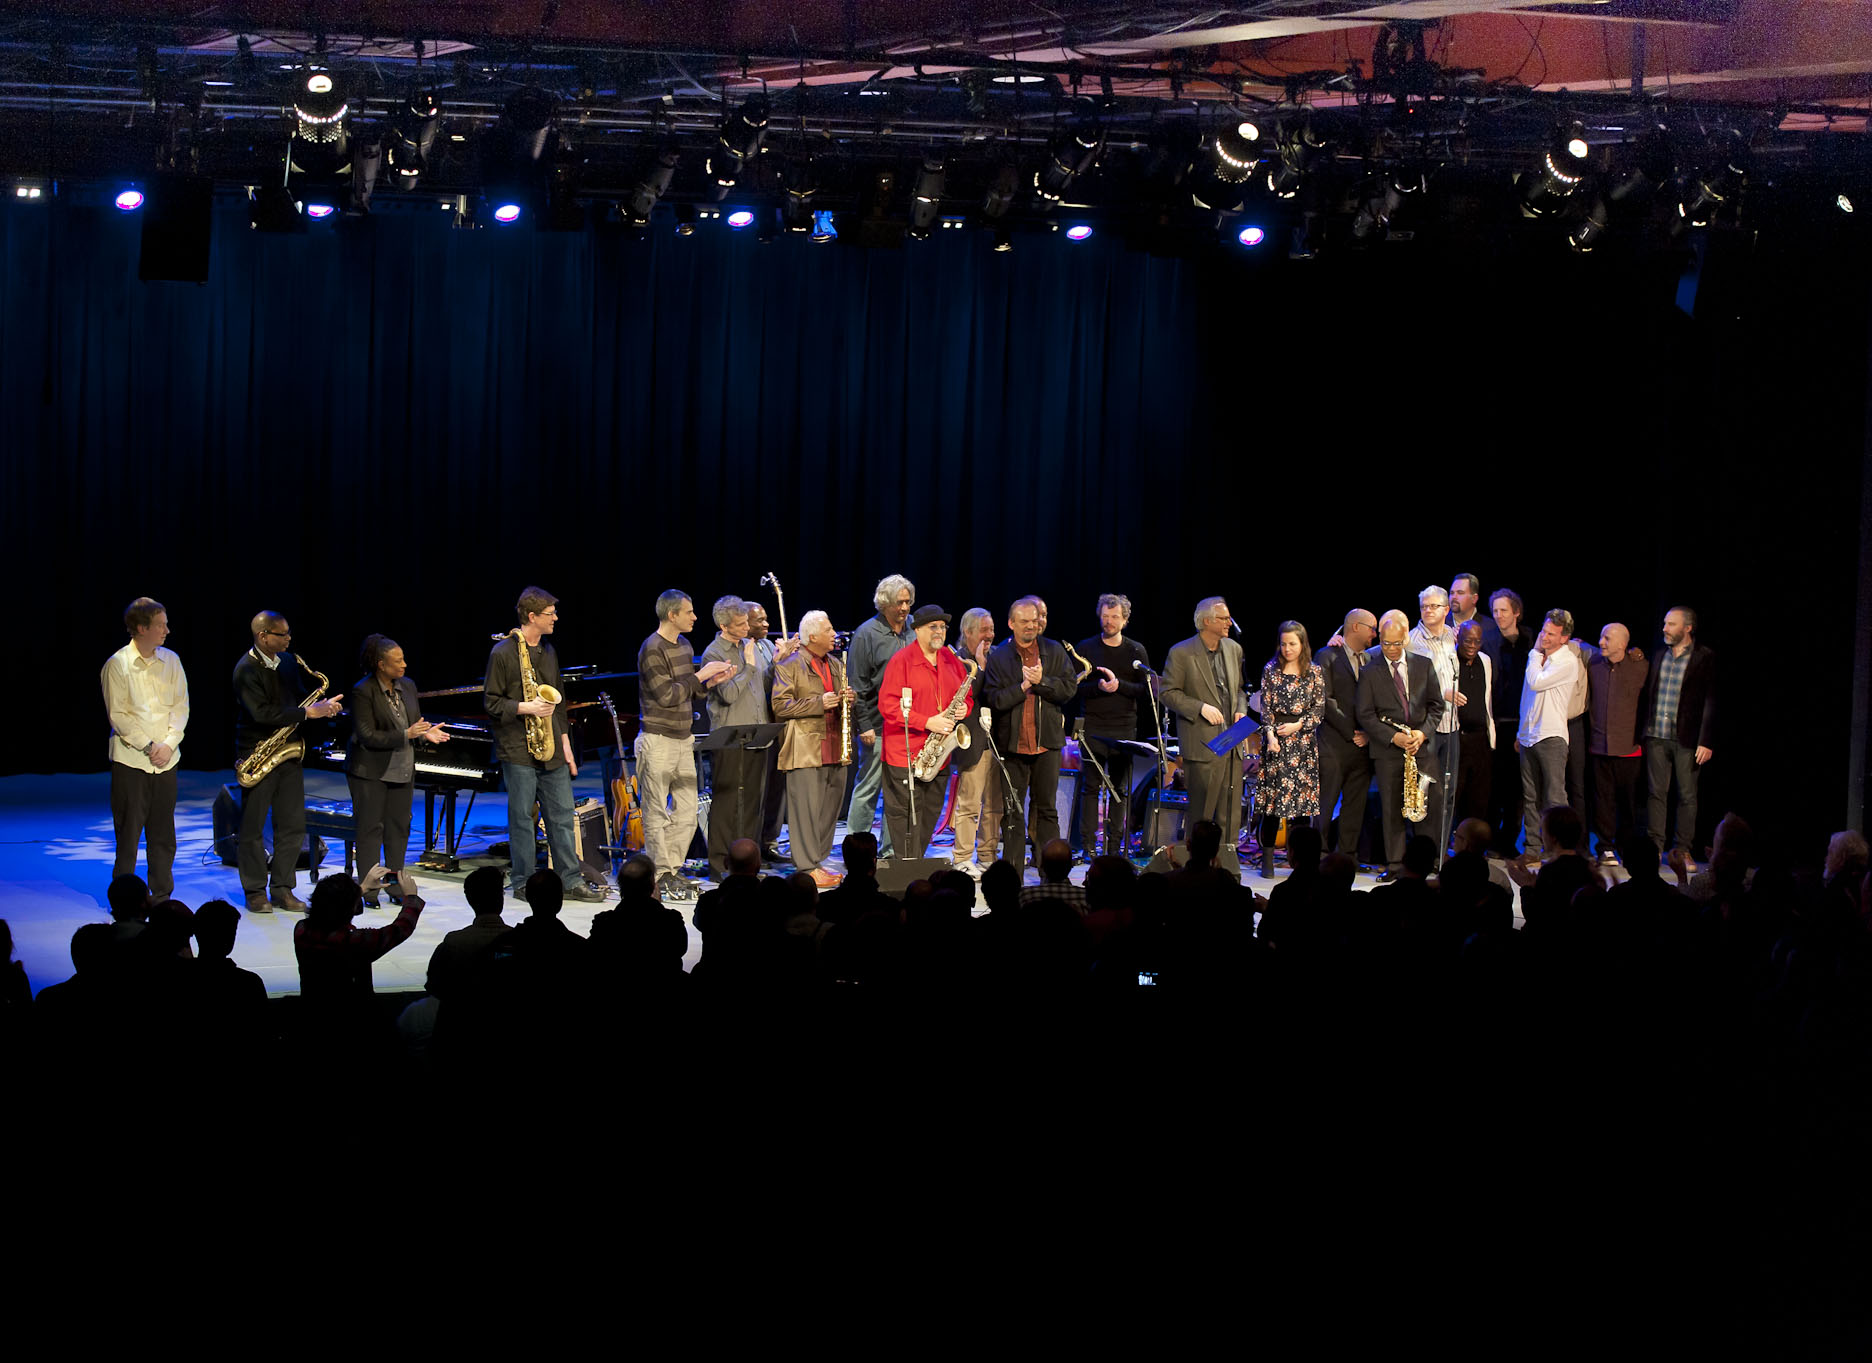 A Tribute to Paul Motian at Symphony Space March 22, 2013